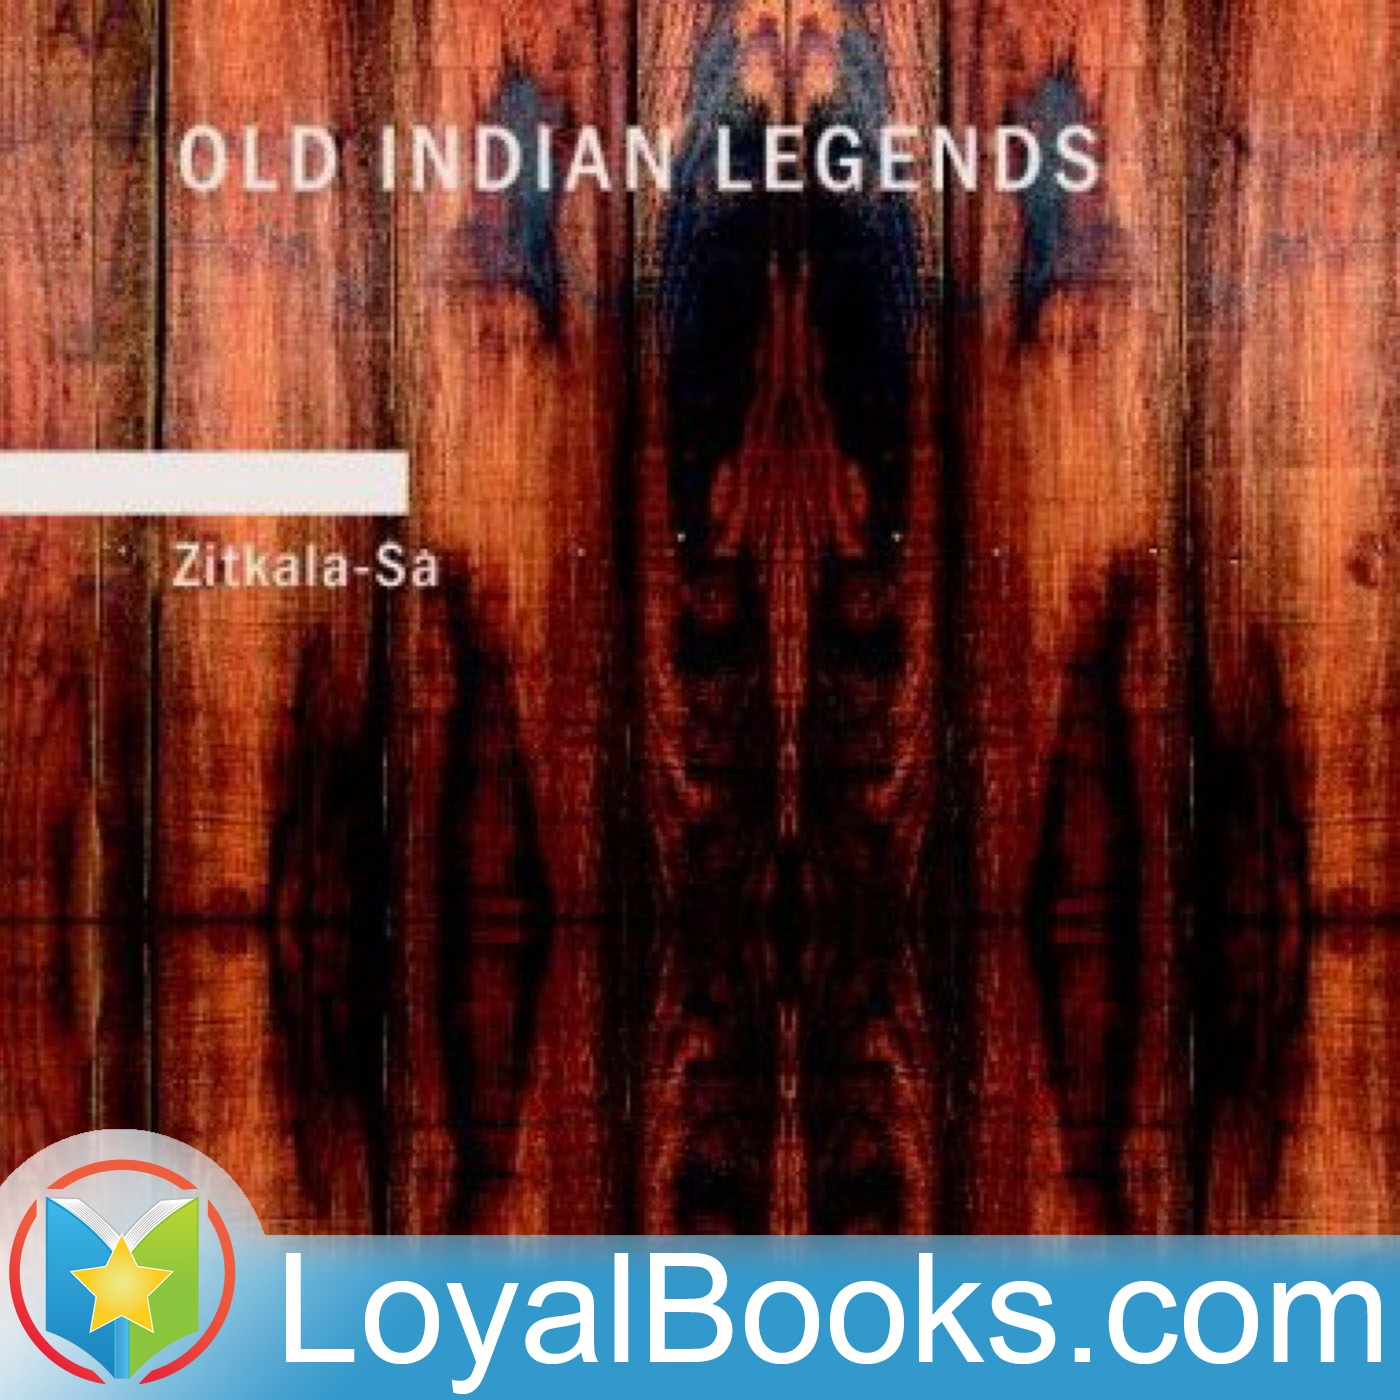 <![CDATA[Old Indian Legends by Zitkala-Sa]]>